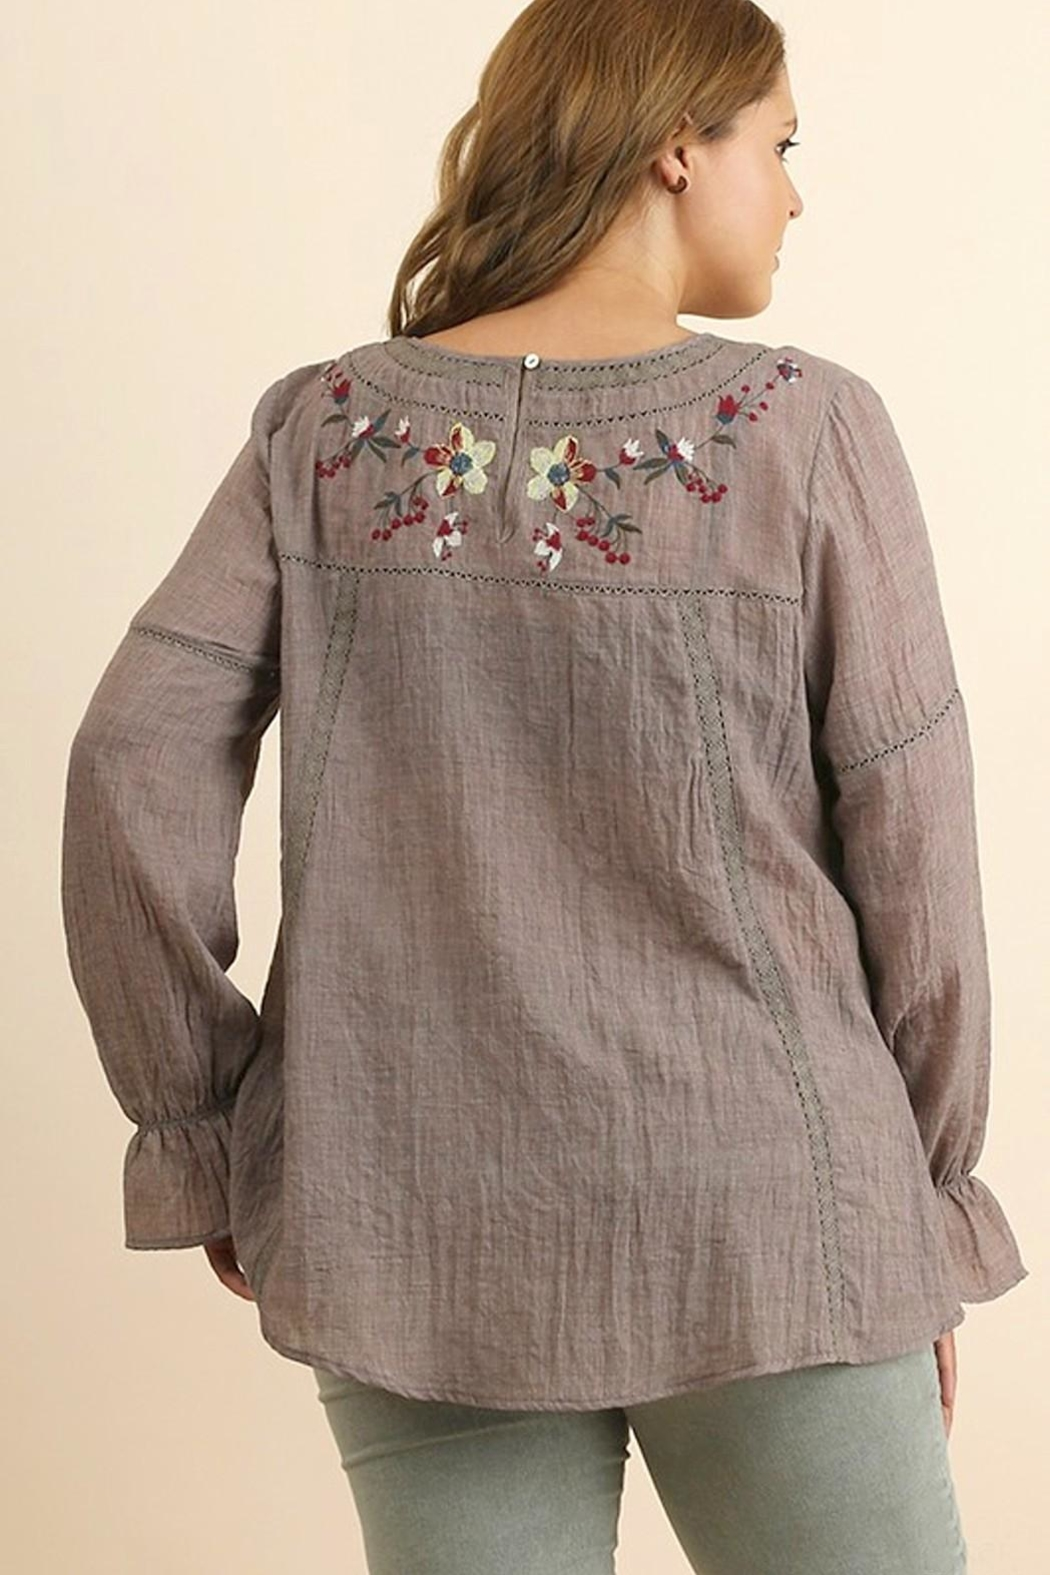 UMG PLUS Floral Embroidered Top - Front Full Image